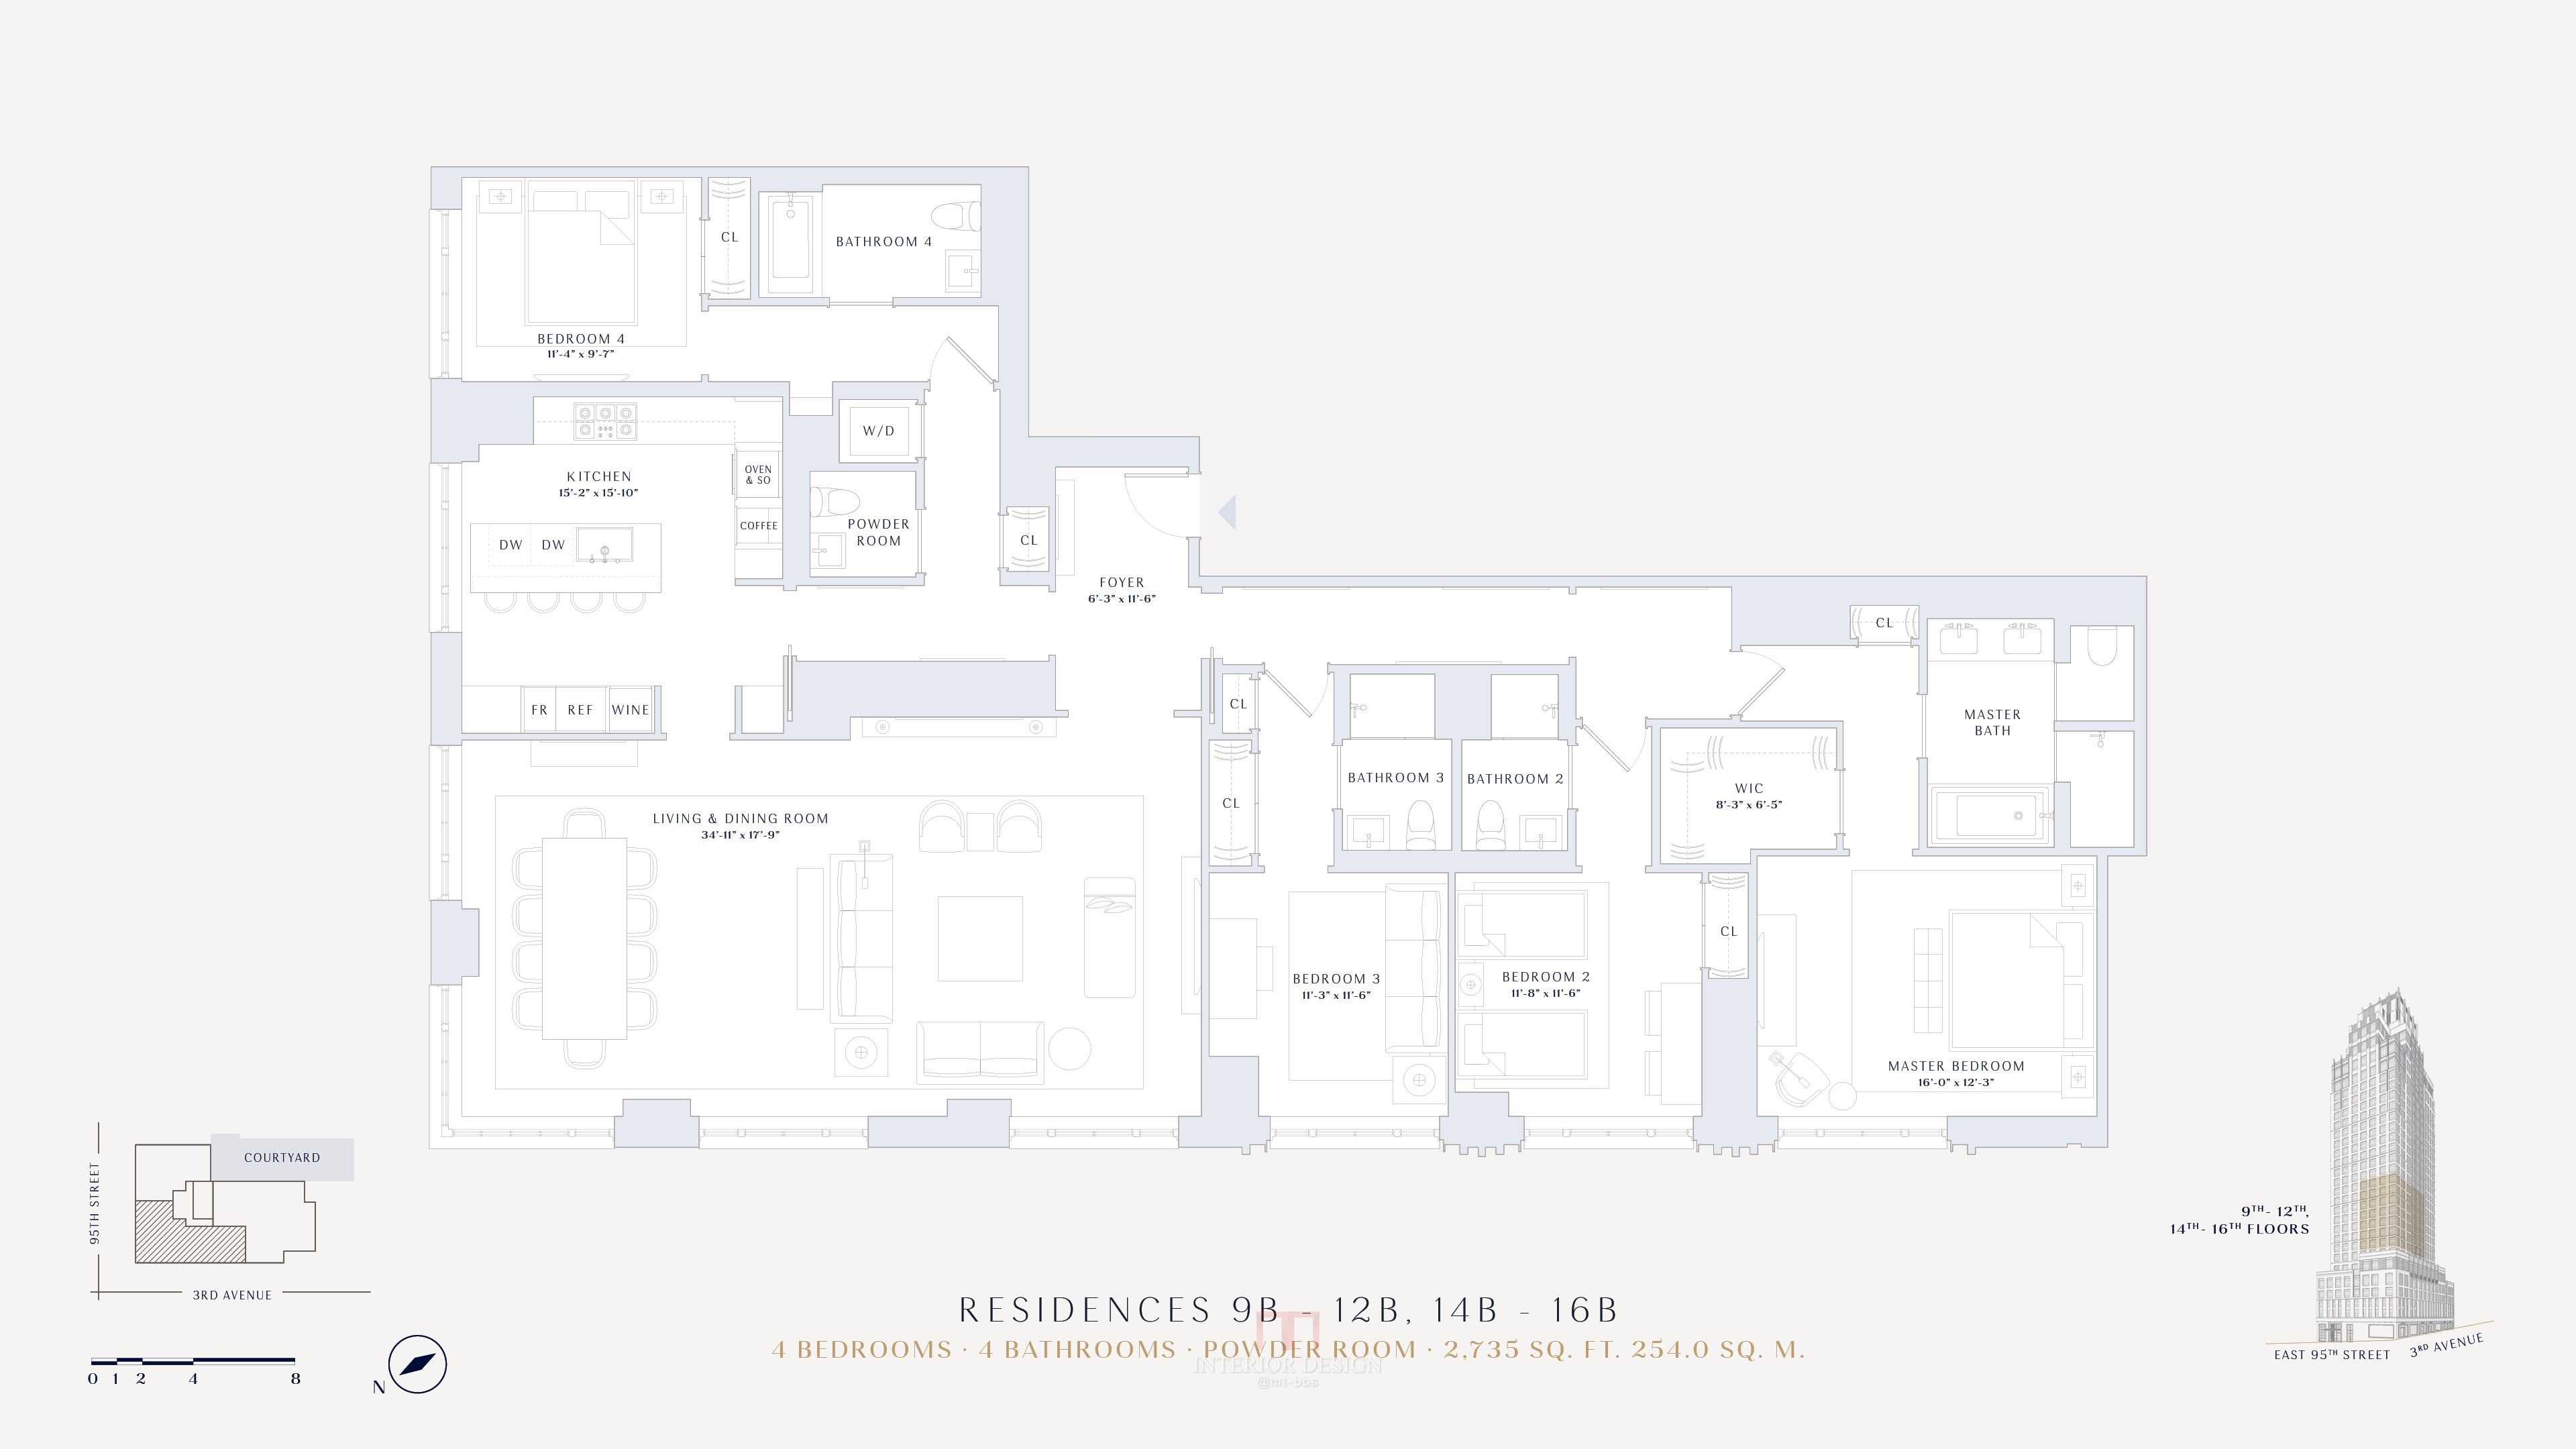 Pin By Eason Zh On Plan Floor Plans Apartment Layout City House